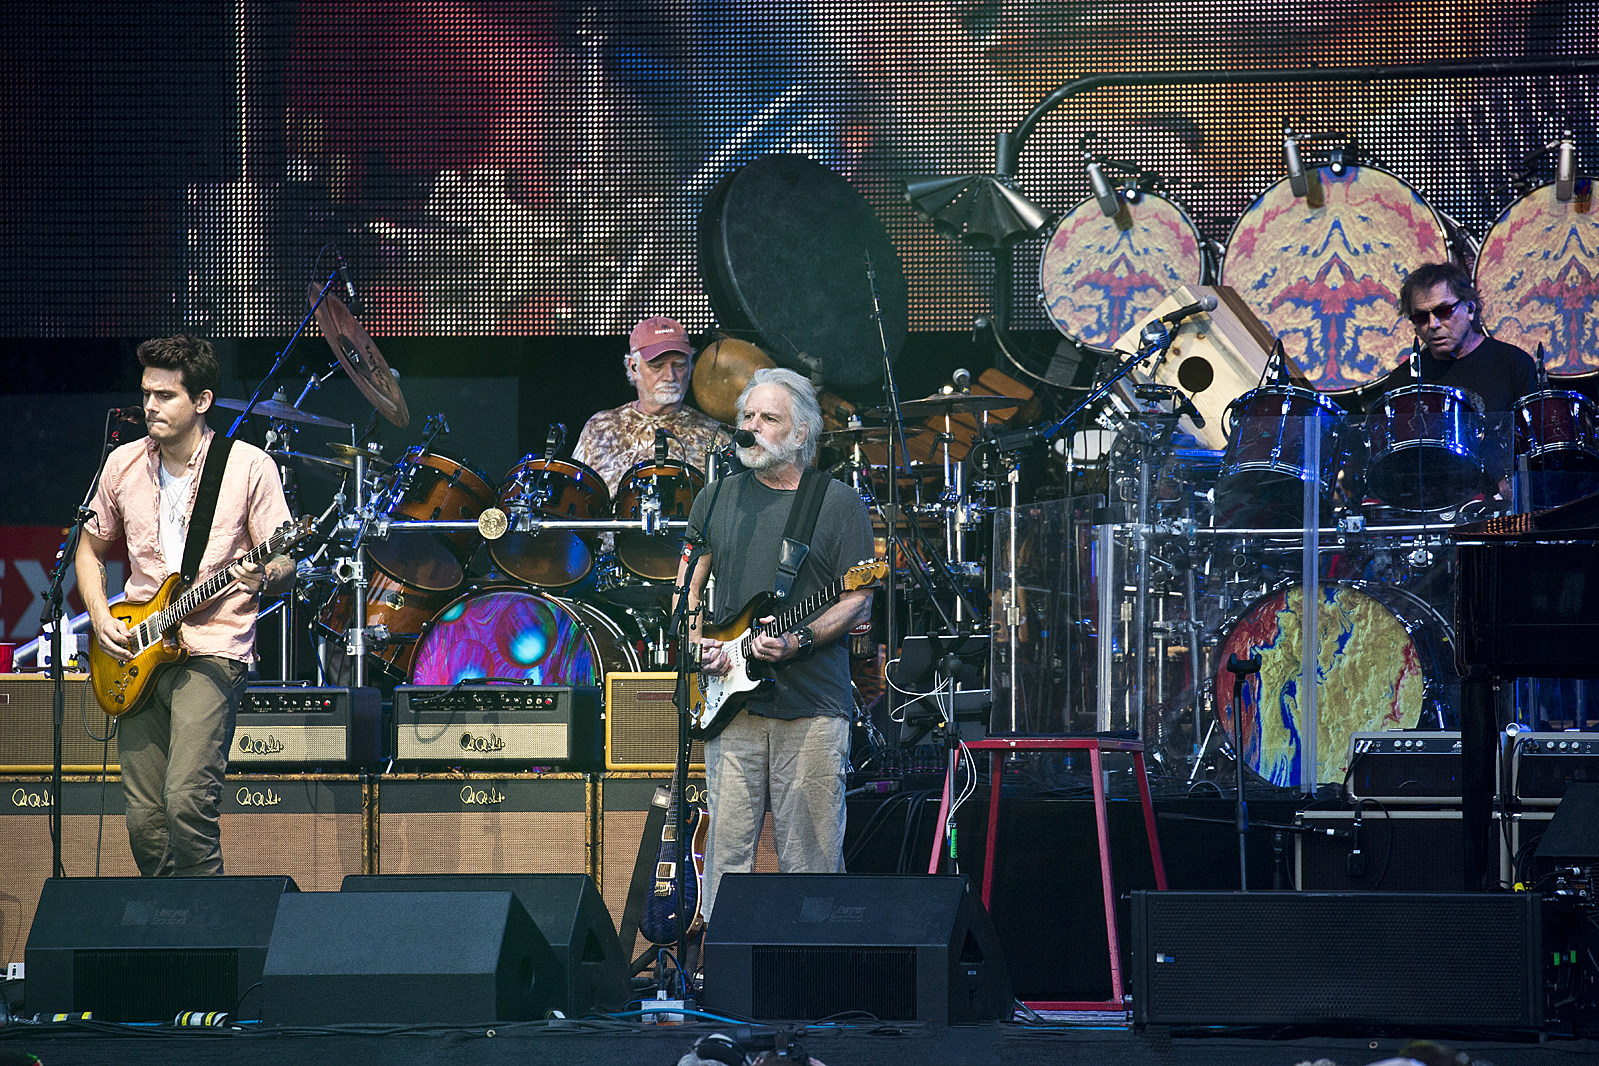 Dead & Company at Citi Field in Flushing, NY